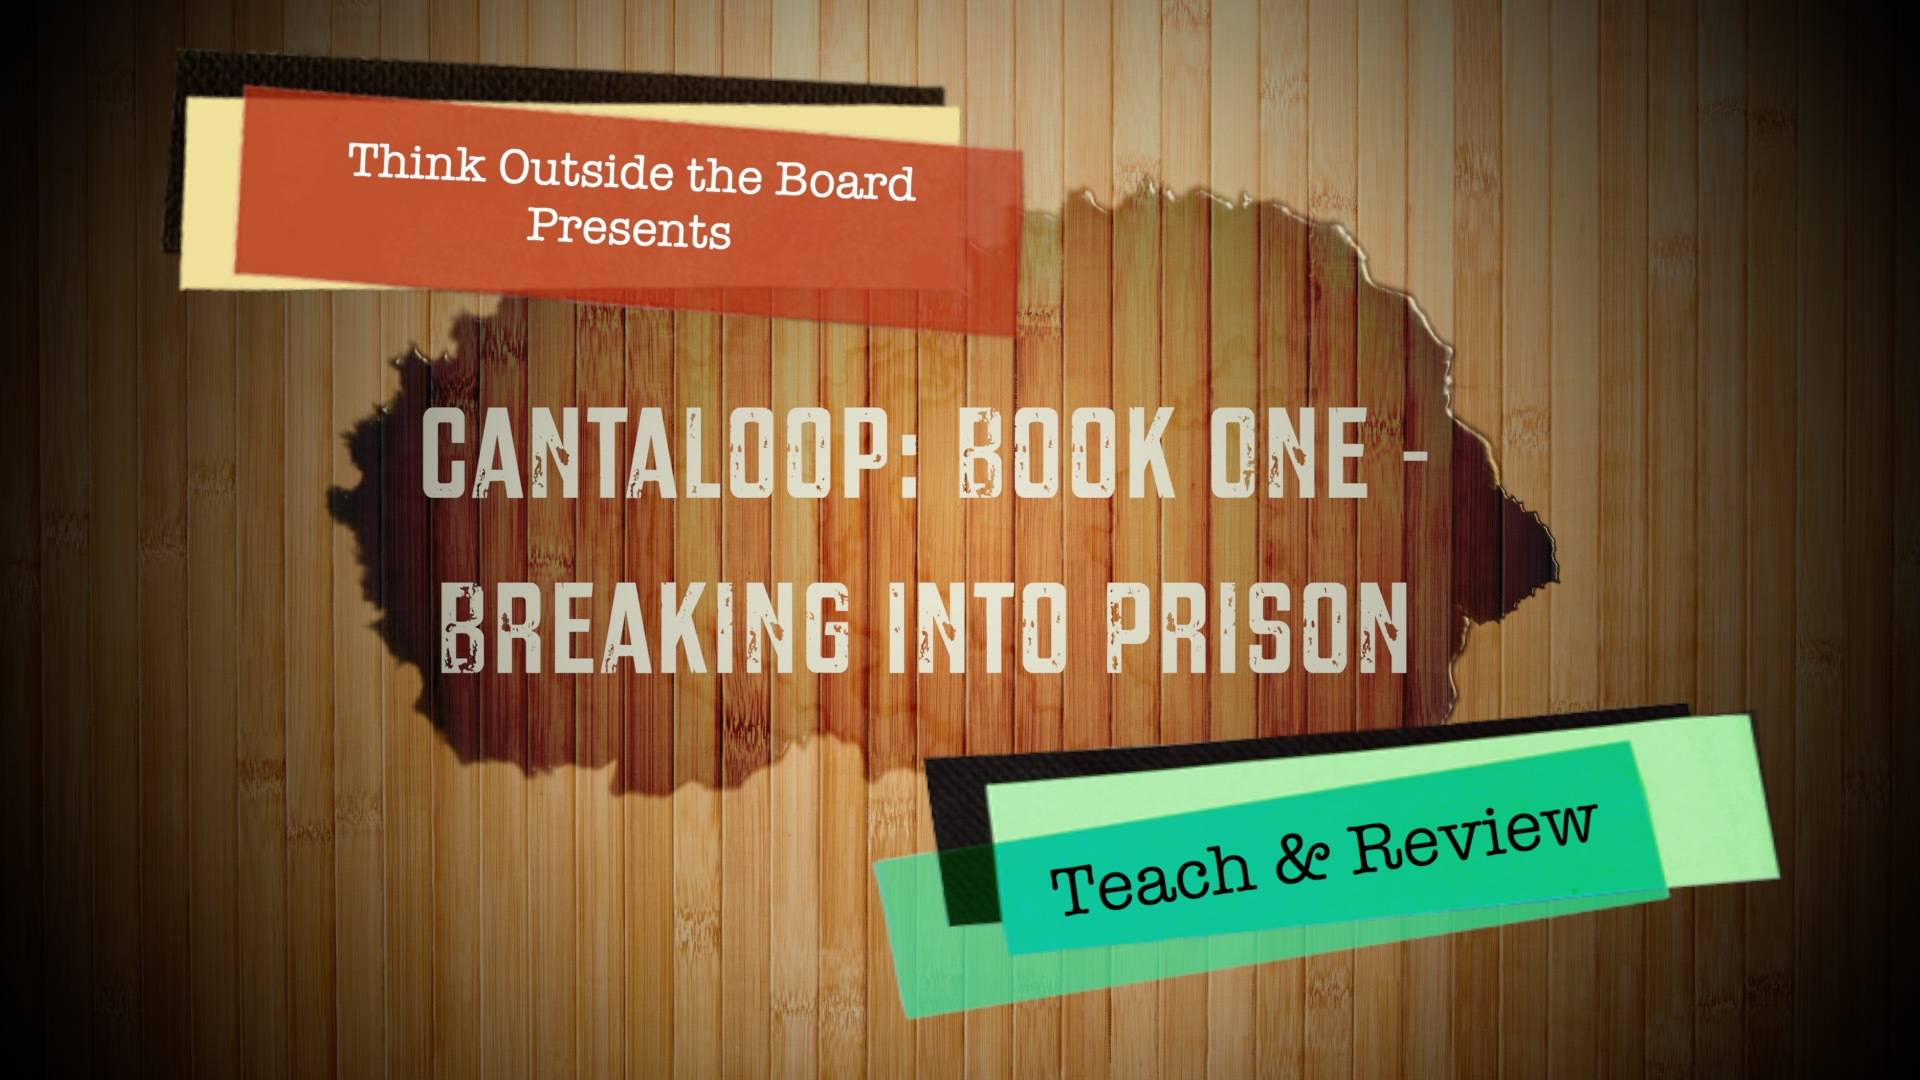 Cantaloop: Book One – Breaking Into Prison Teach & Review